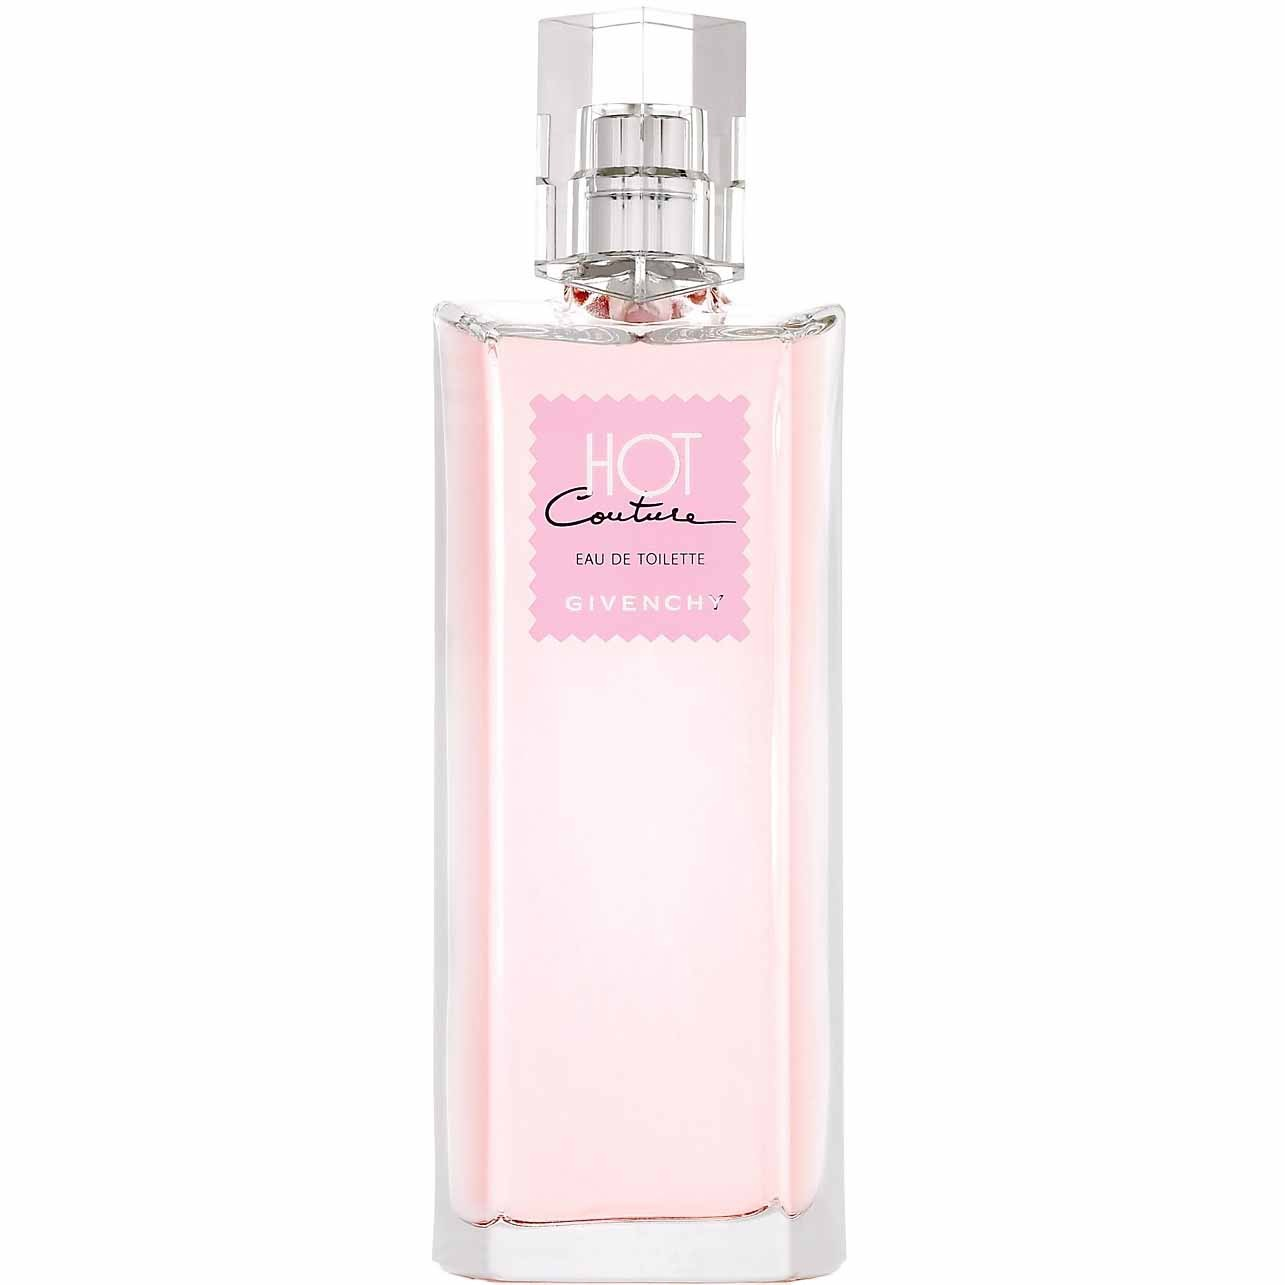 Givenchy Hot Couture eau de toilette vapo donna 50 ml